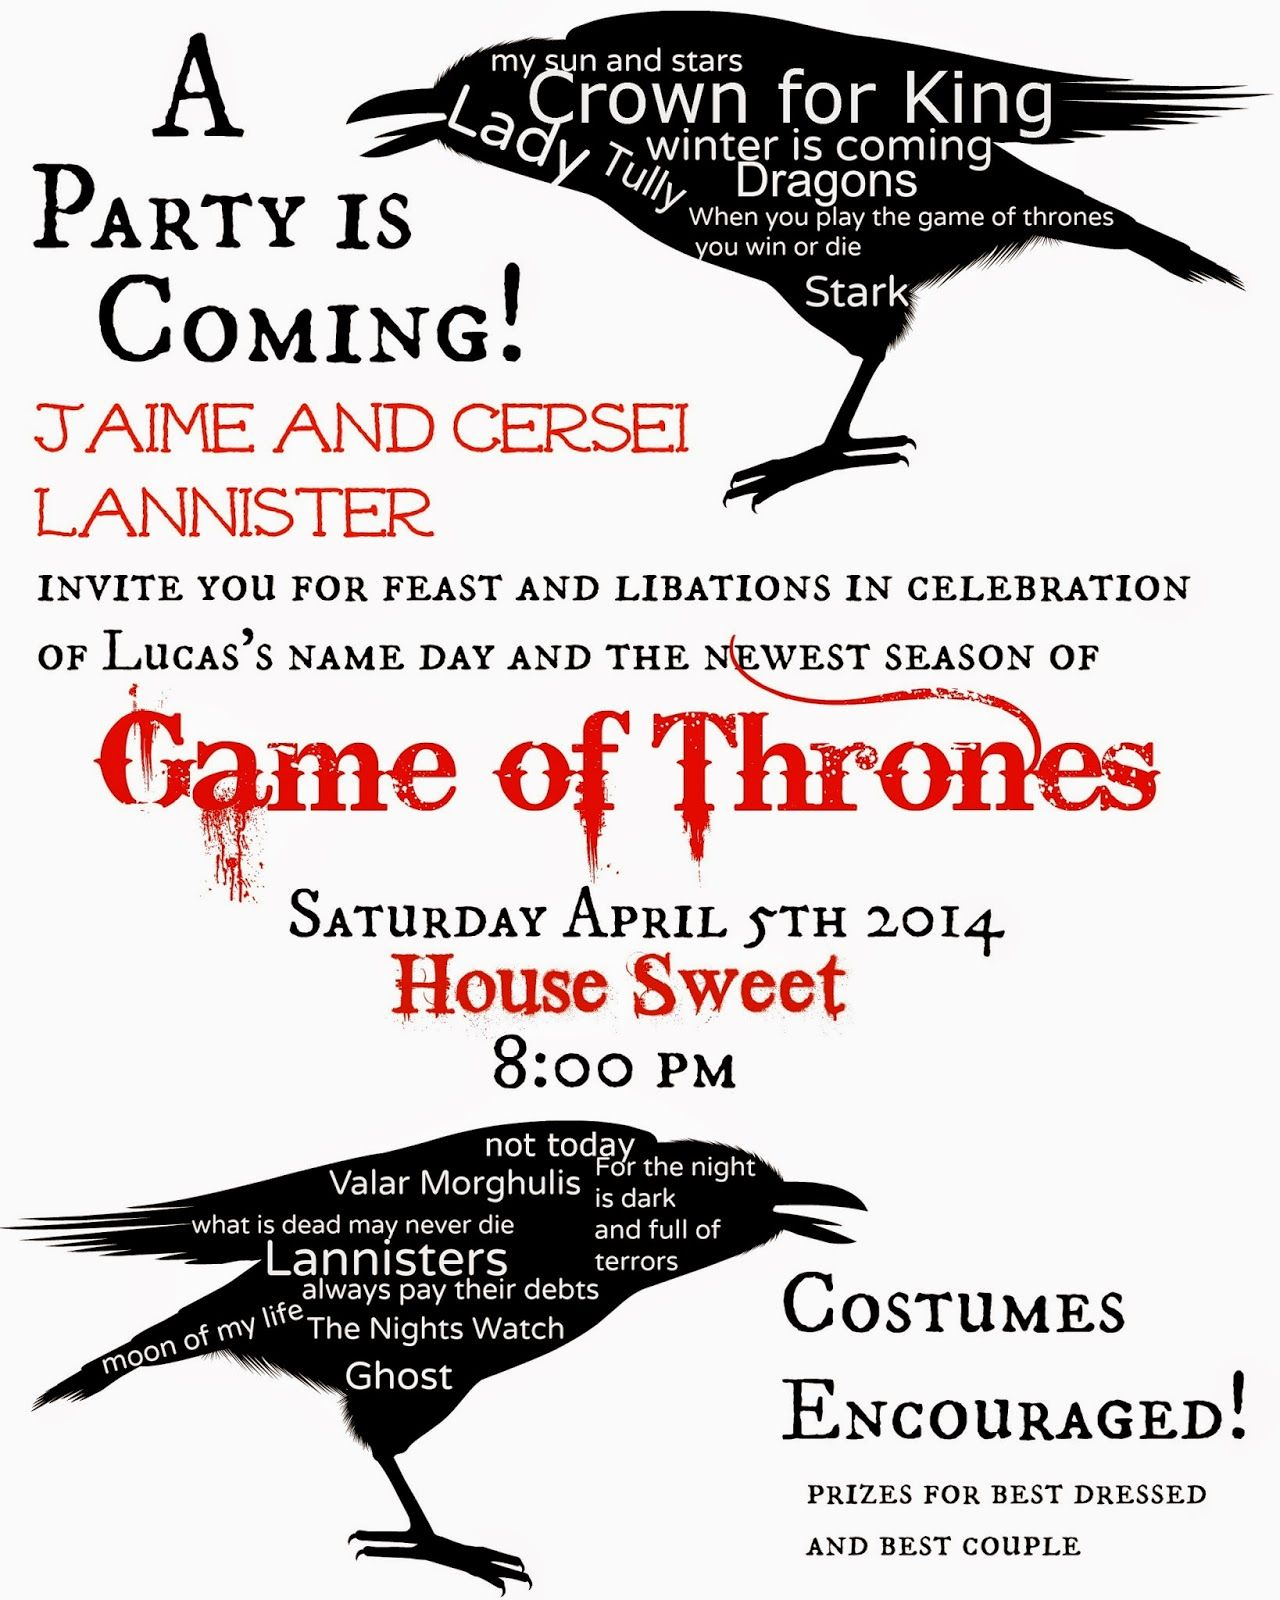 Pin on Game of Thrones Party